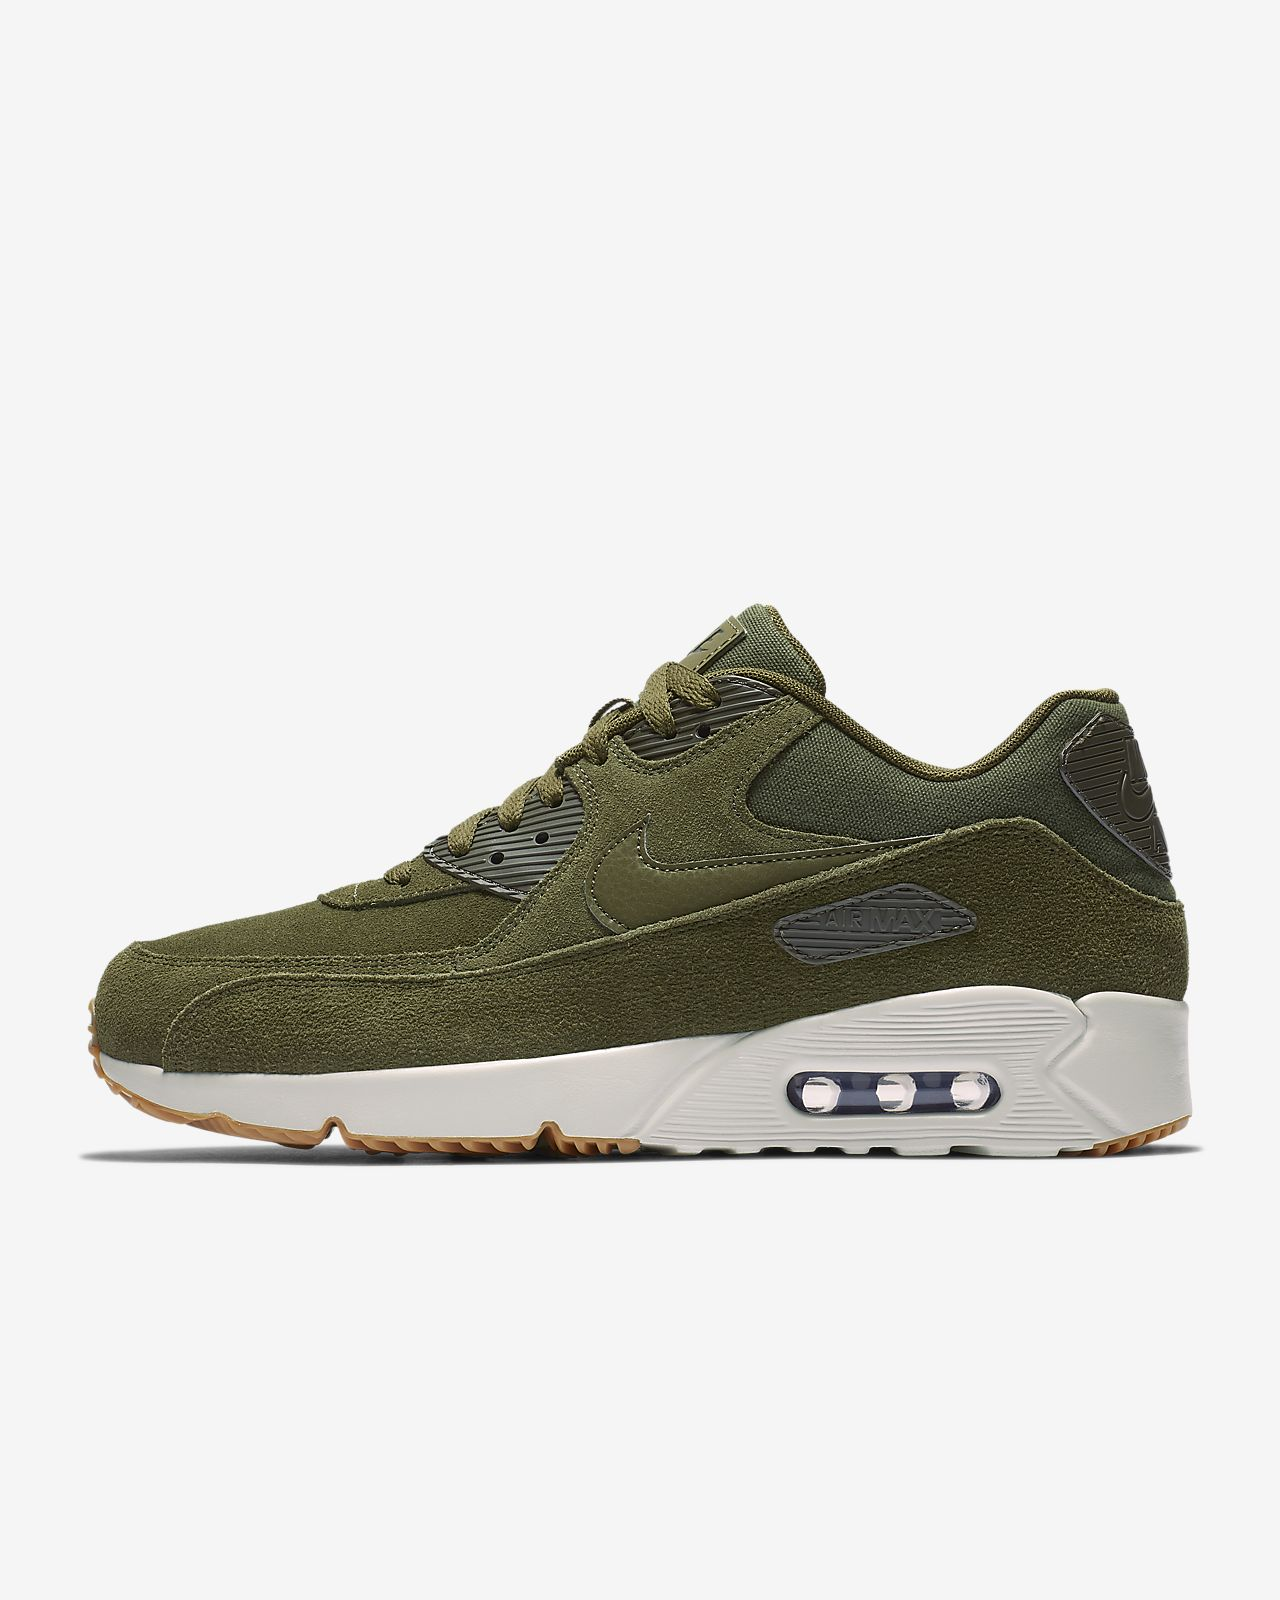 wholesale dealer d7cd0 12467 ... Nike Air Max 90 Ultra 2.0 Men s Shoe